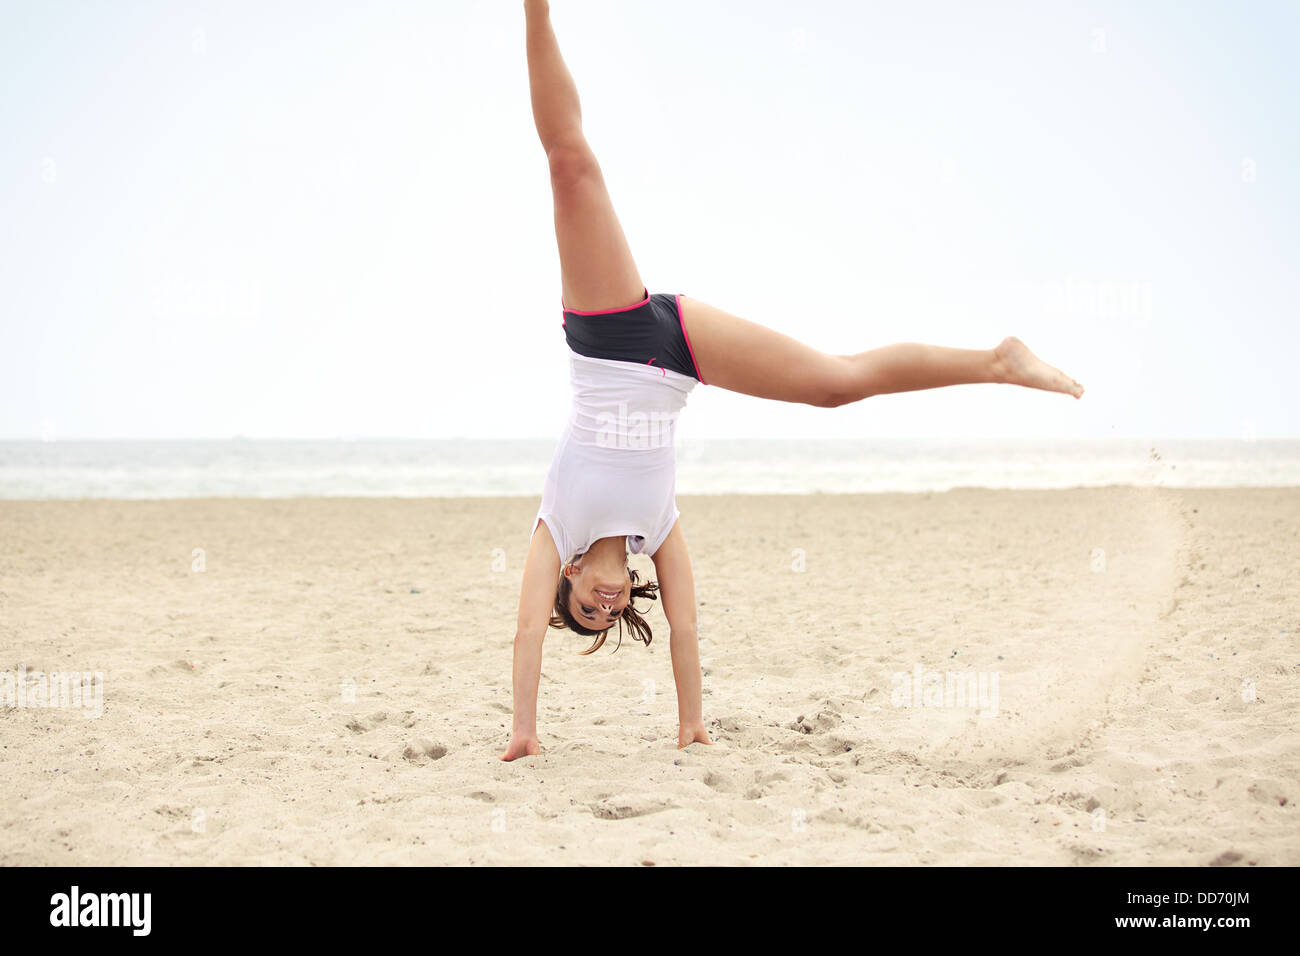 Happy outdoor female doing cartwheel on the beach. Healthy and active lifestyle shot expressing happiness and joy. - Stock Image